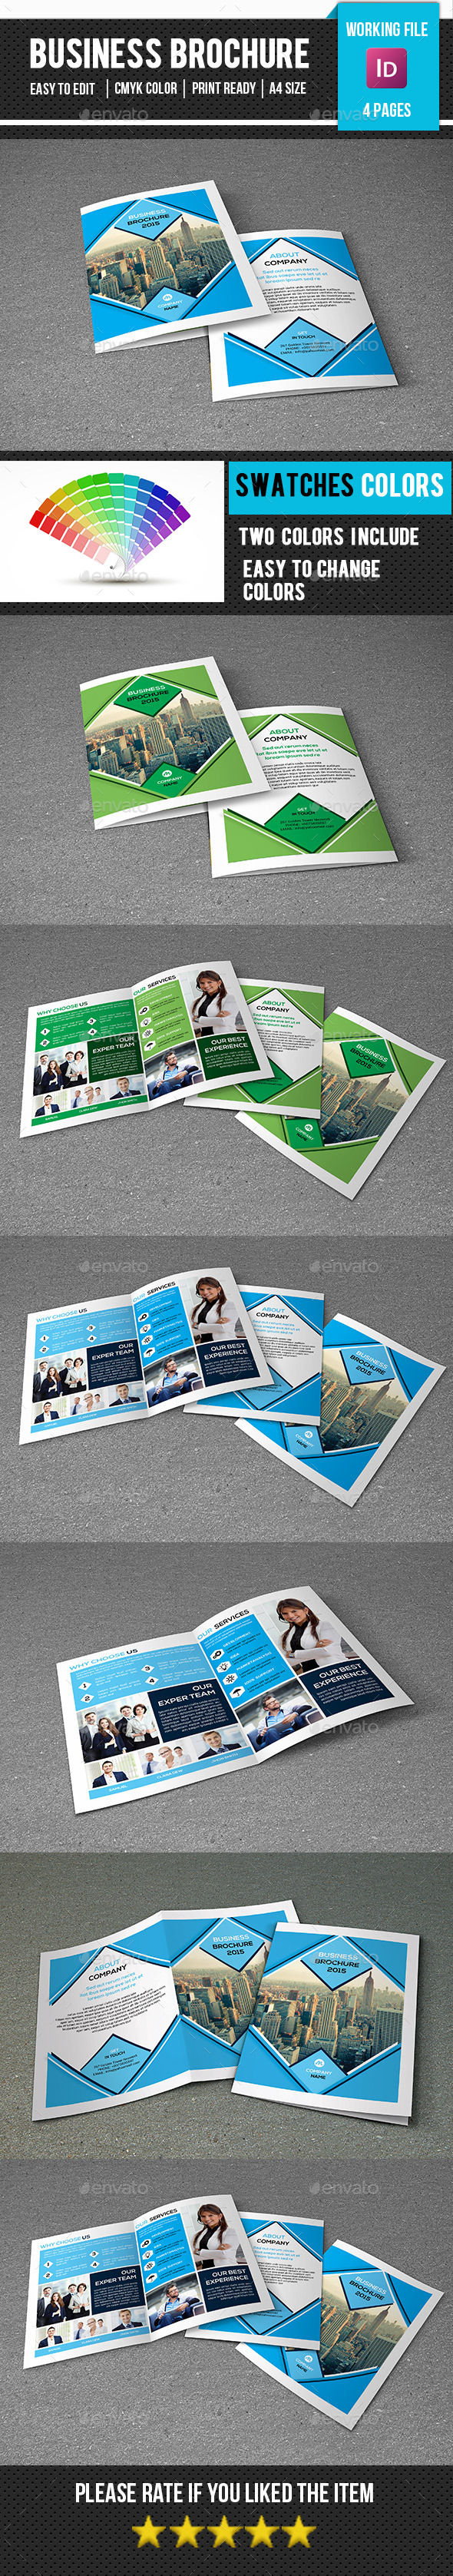 4 Page Corporate Brochure-V297 - Corporate Brochures